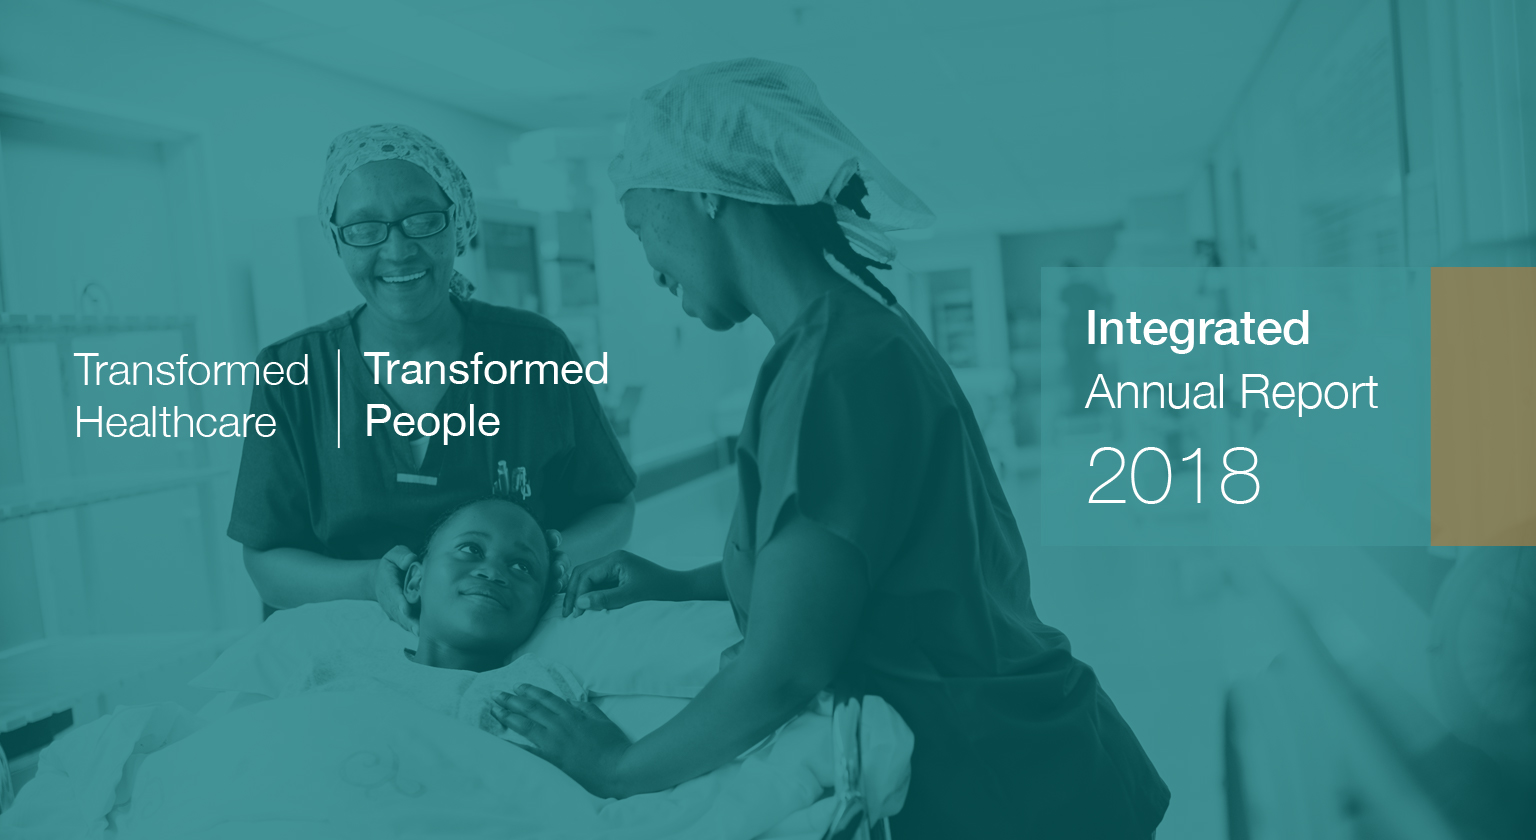 RH Bophelo Integrated Annual Report 2018